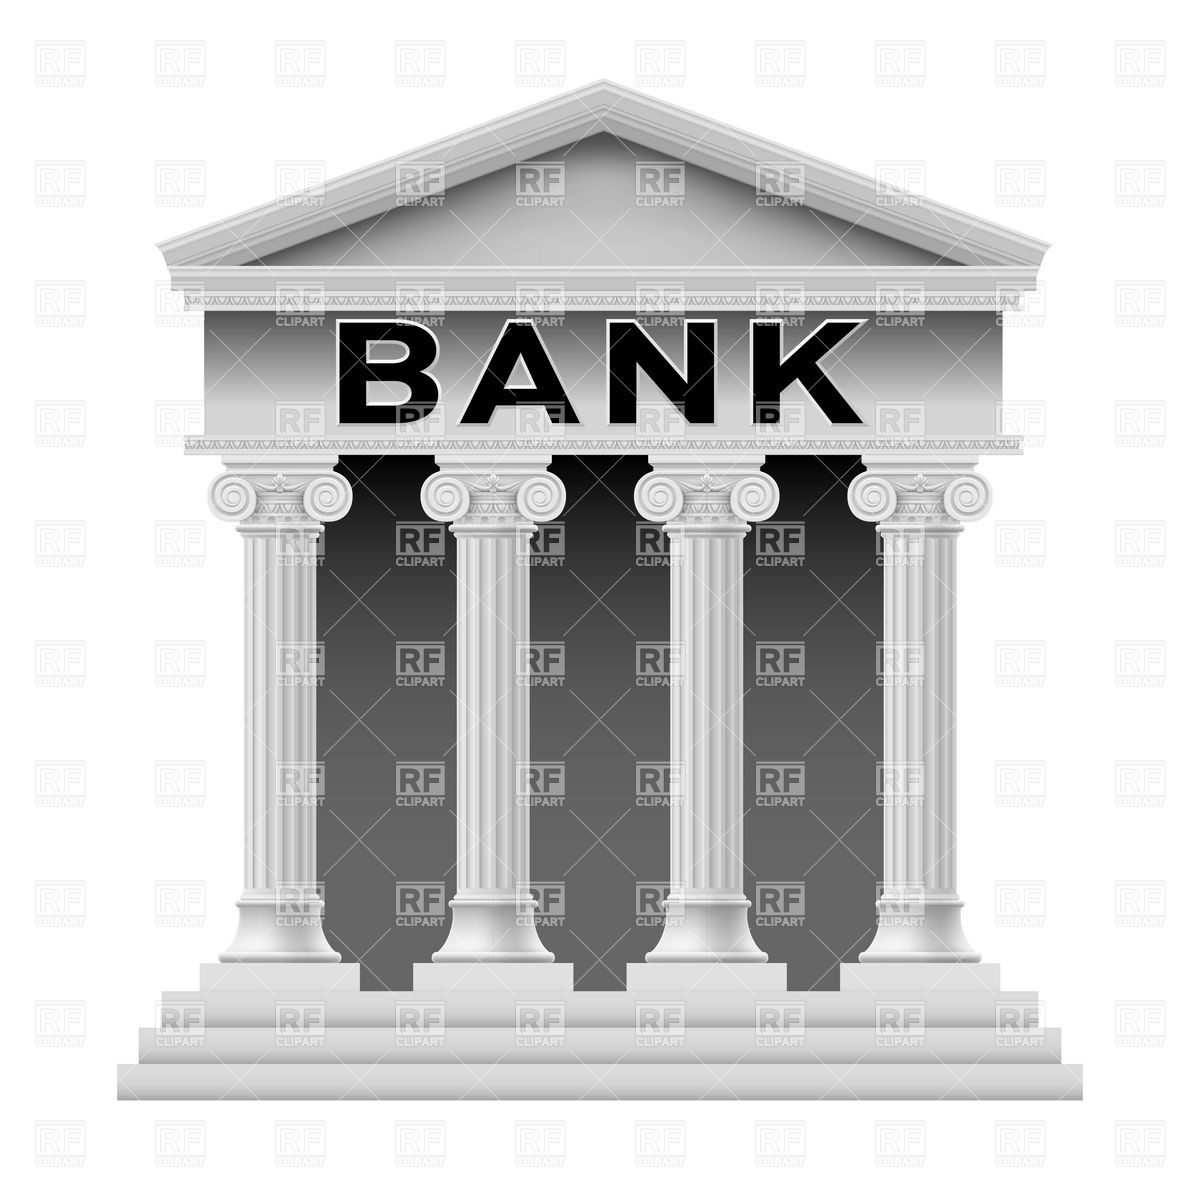 bank building clipart clipart suggest banking cliparts images banking clipart free